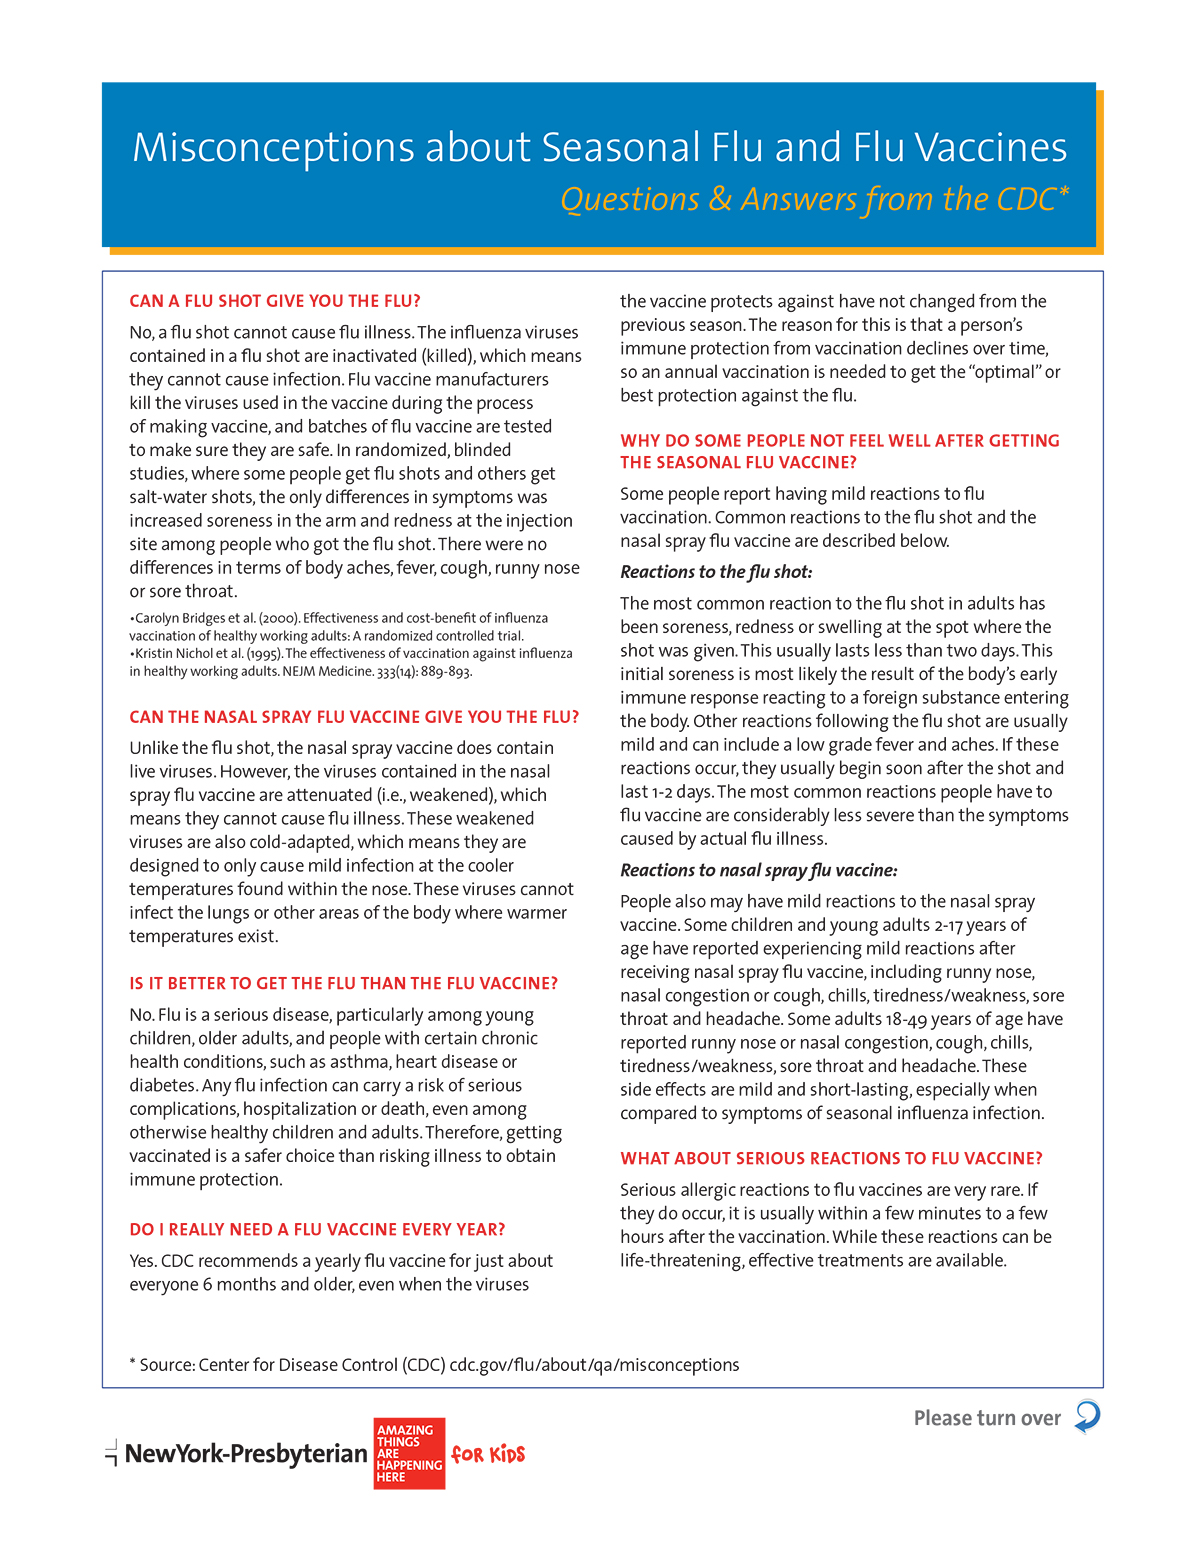 Misconceptions about Seasonal Flu and Flu Vaccines |Tip Sheets ...